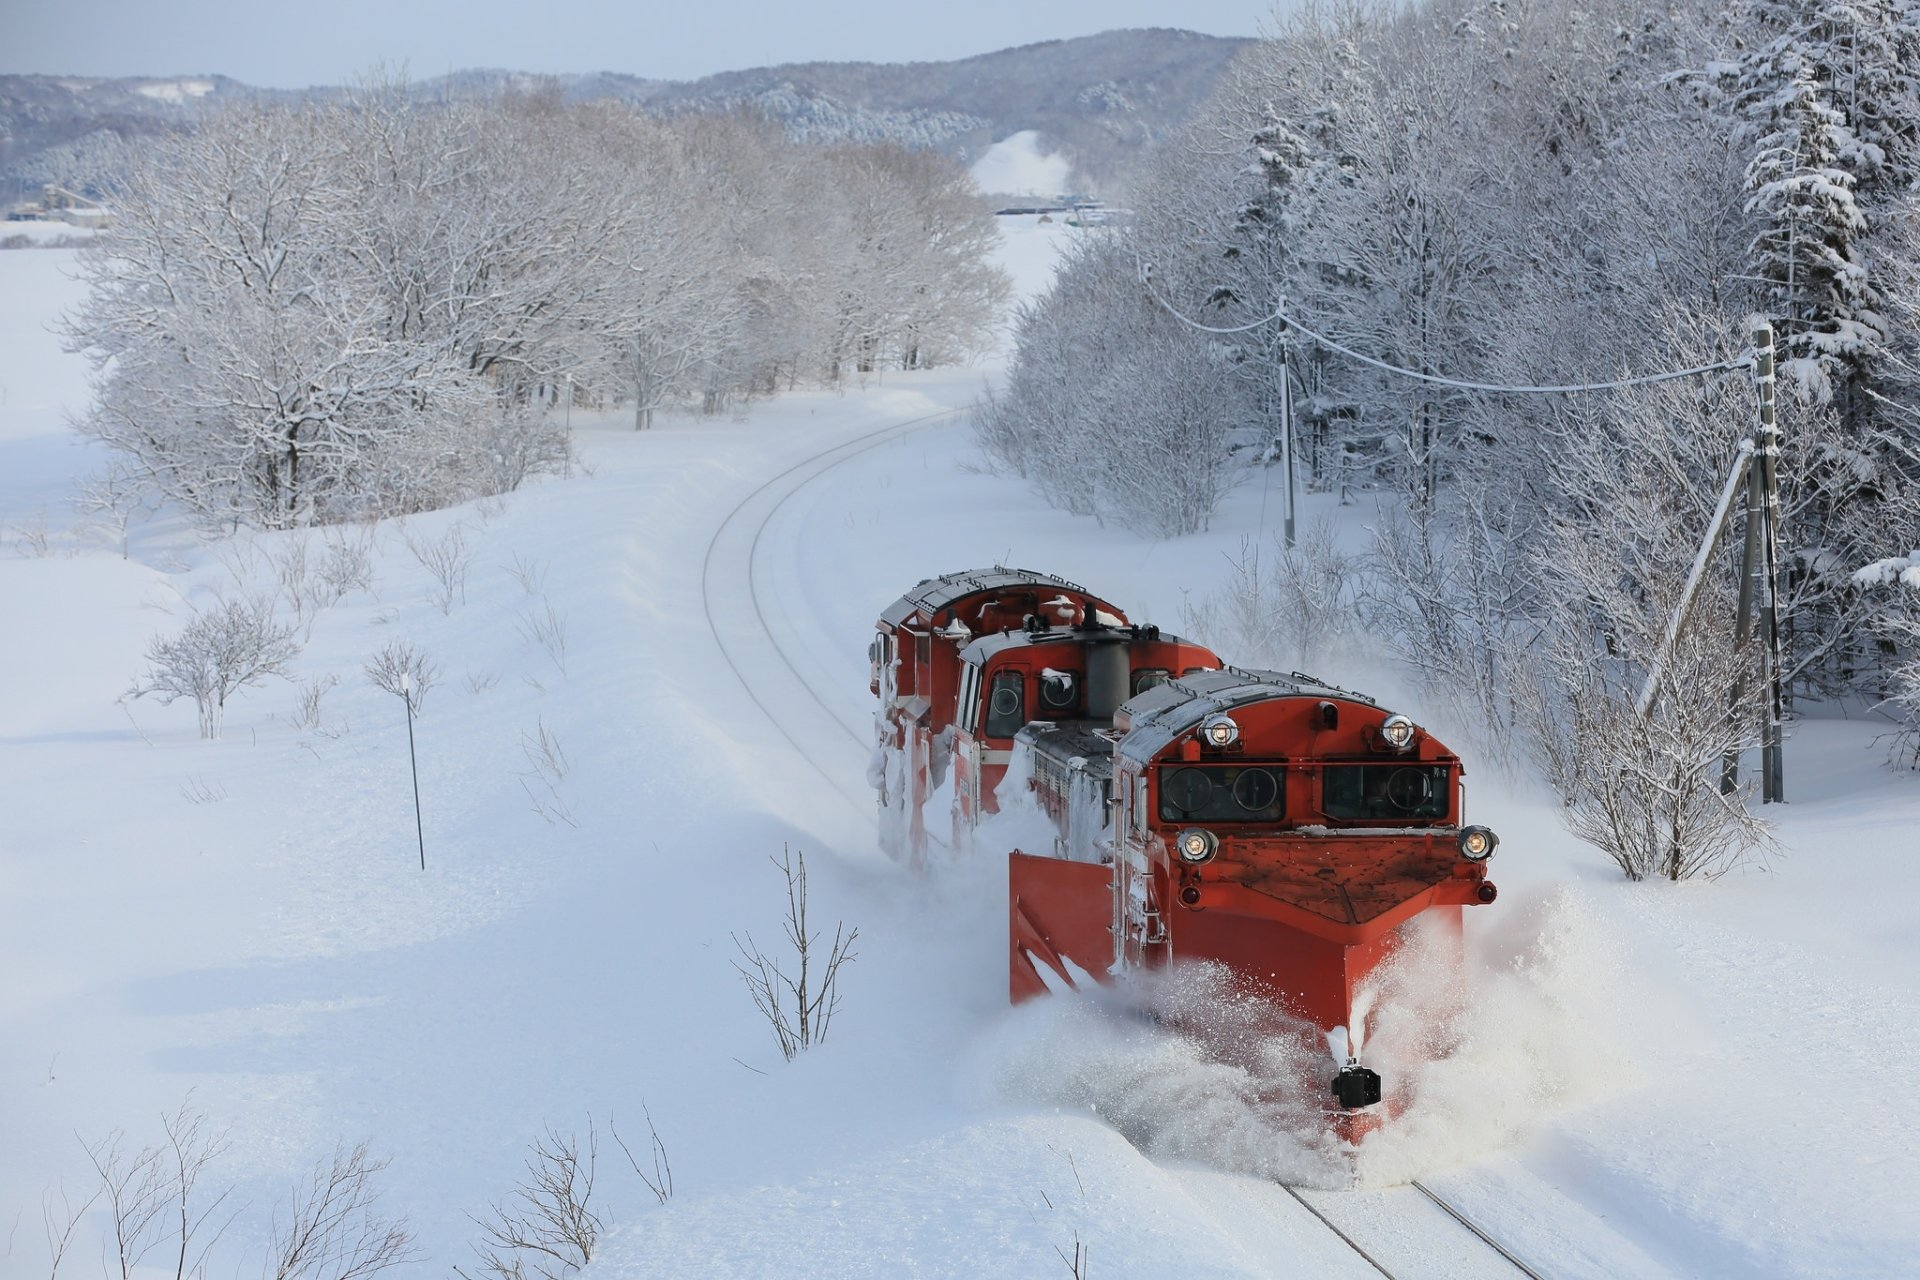 Vehicles - Train  Locomotive Winter Snow Wallpaper